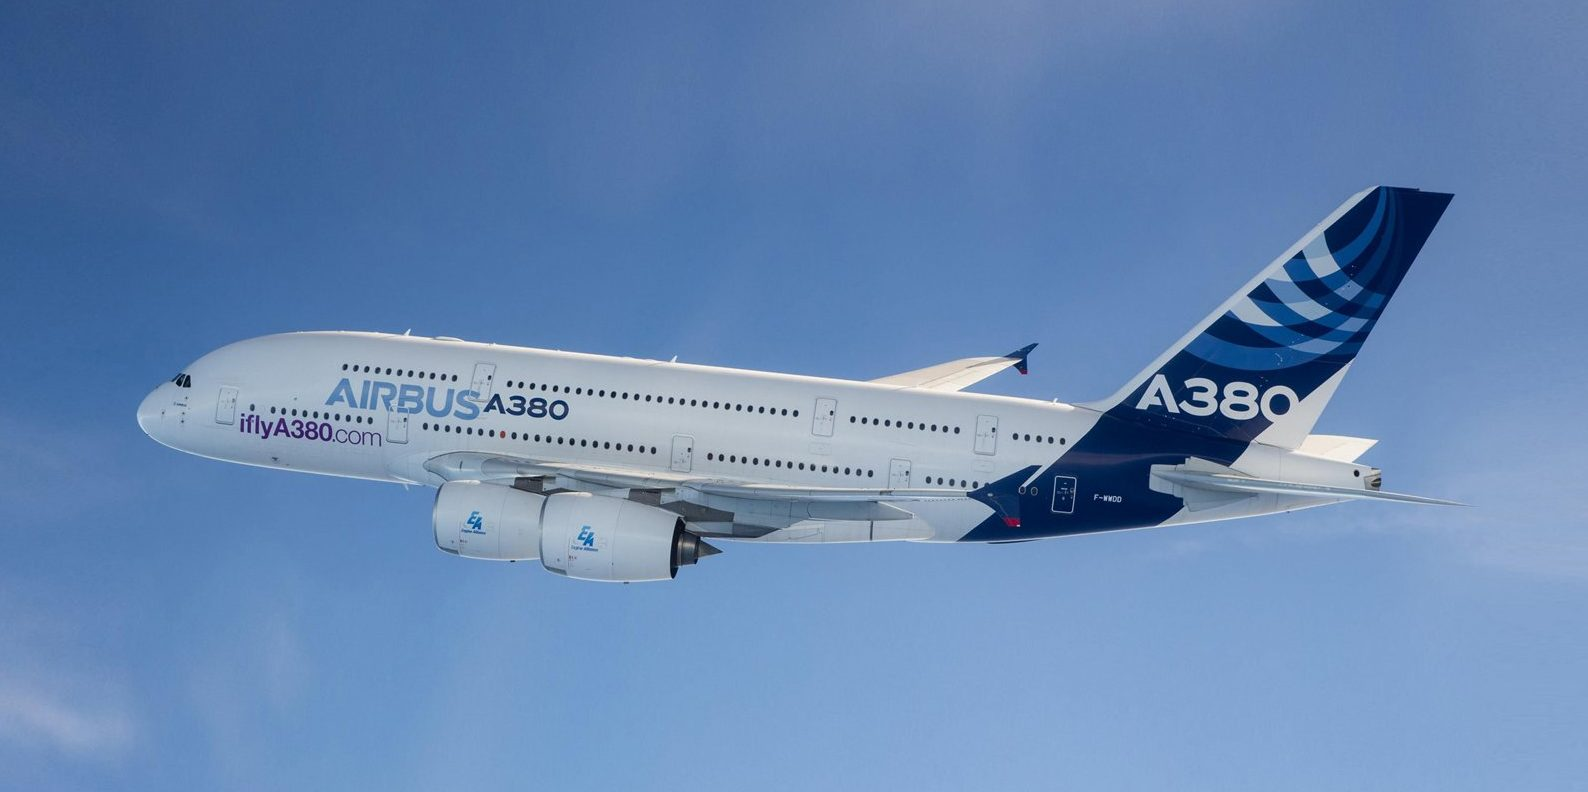 Airbus A380 Series Aircraft